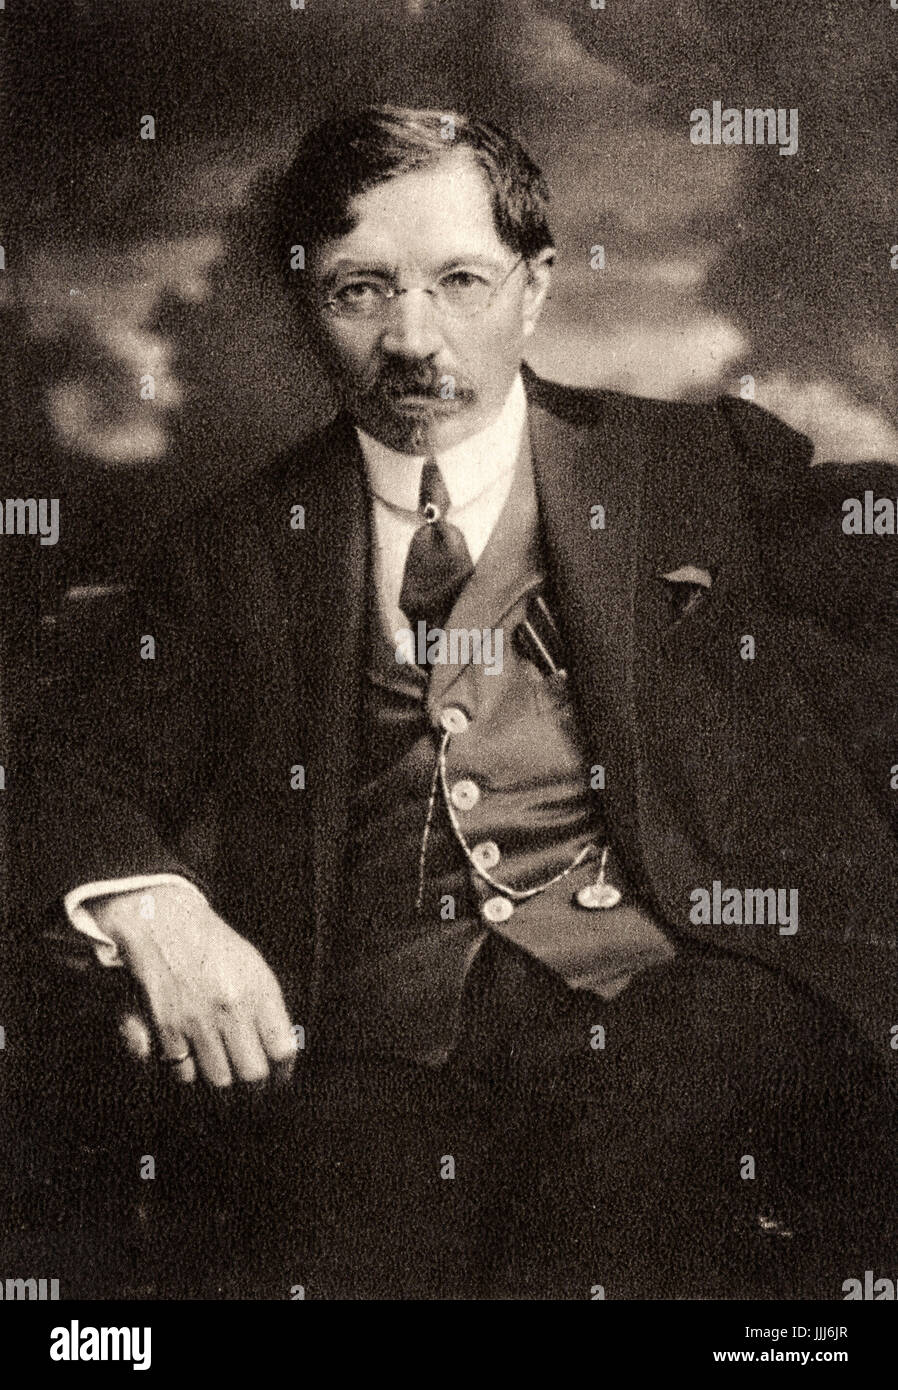 Shalom Aleichem - Yiddish writer born in Poltava, Ukraine.  Wrote humorous stories about Jewish life in Russia. - Stock Image